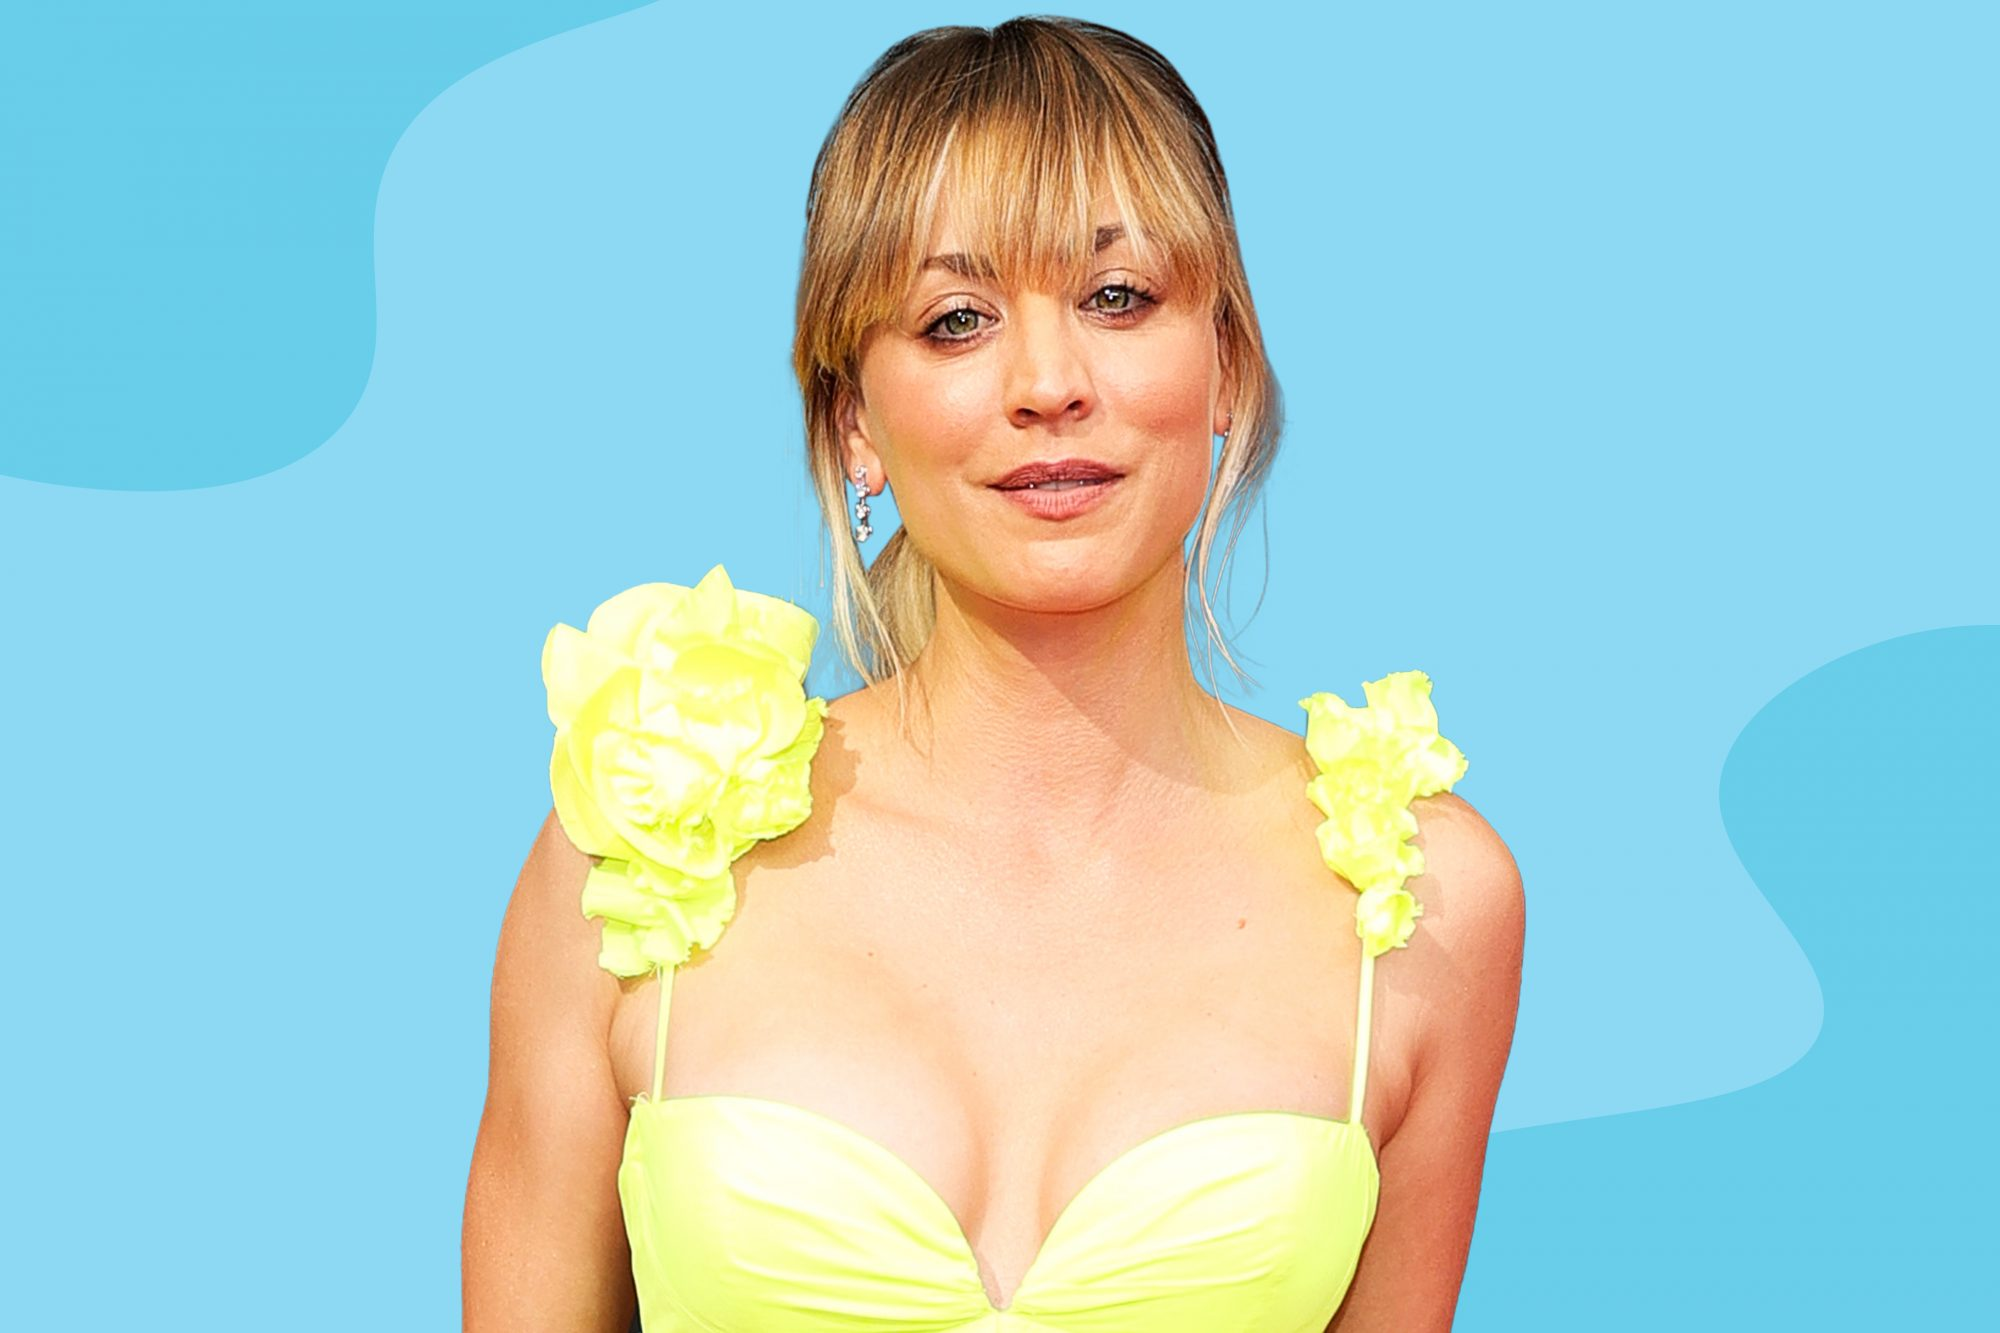 Kaley-Cuoco-Changed-Into-These-Sleek-Neon-Sneakers-That-Perfectly-Matched-Her-Emmys-Gown-GettyImages-1341341437